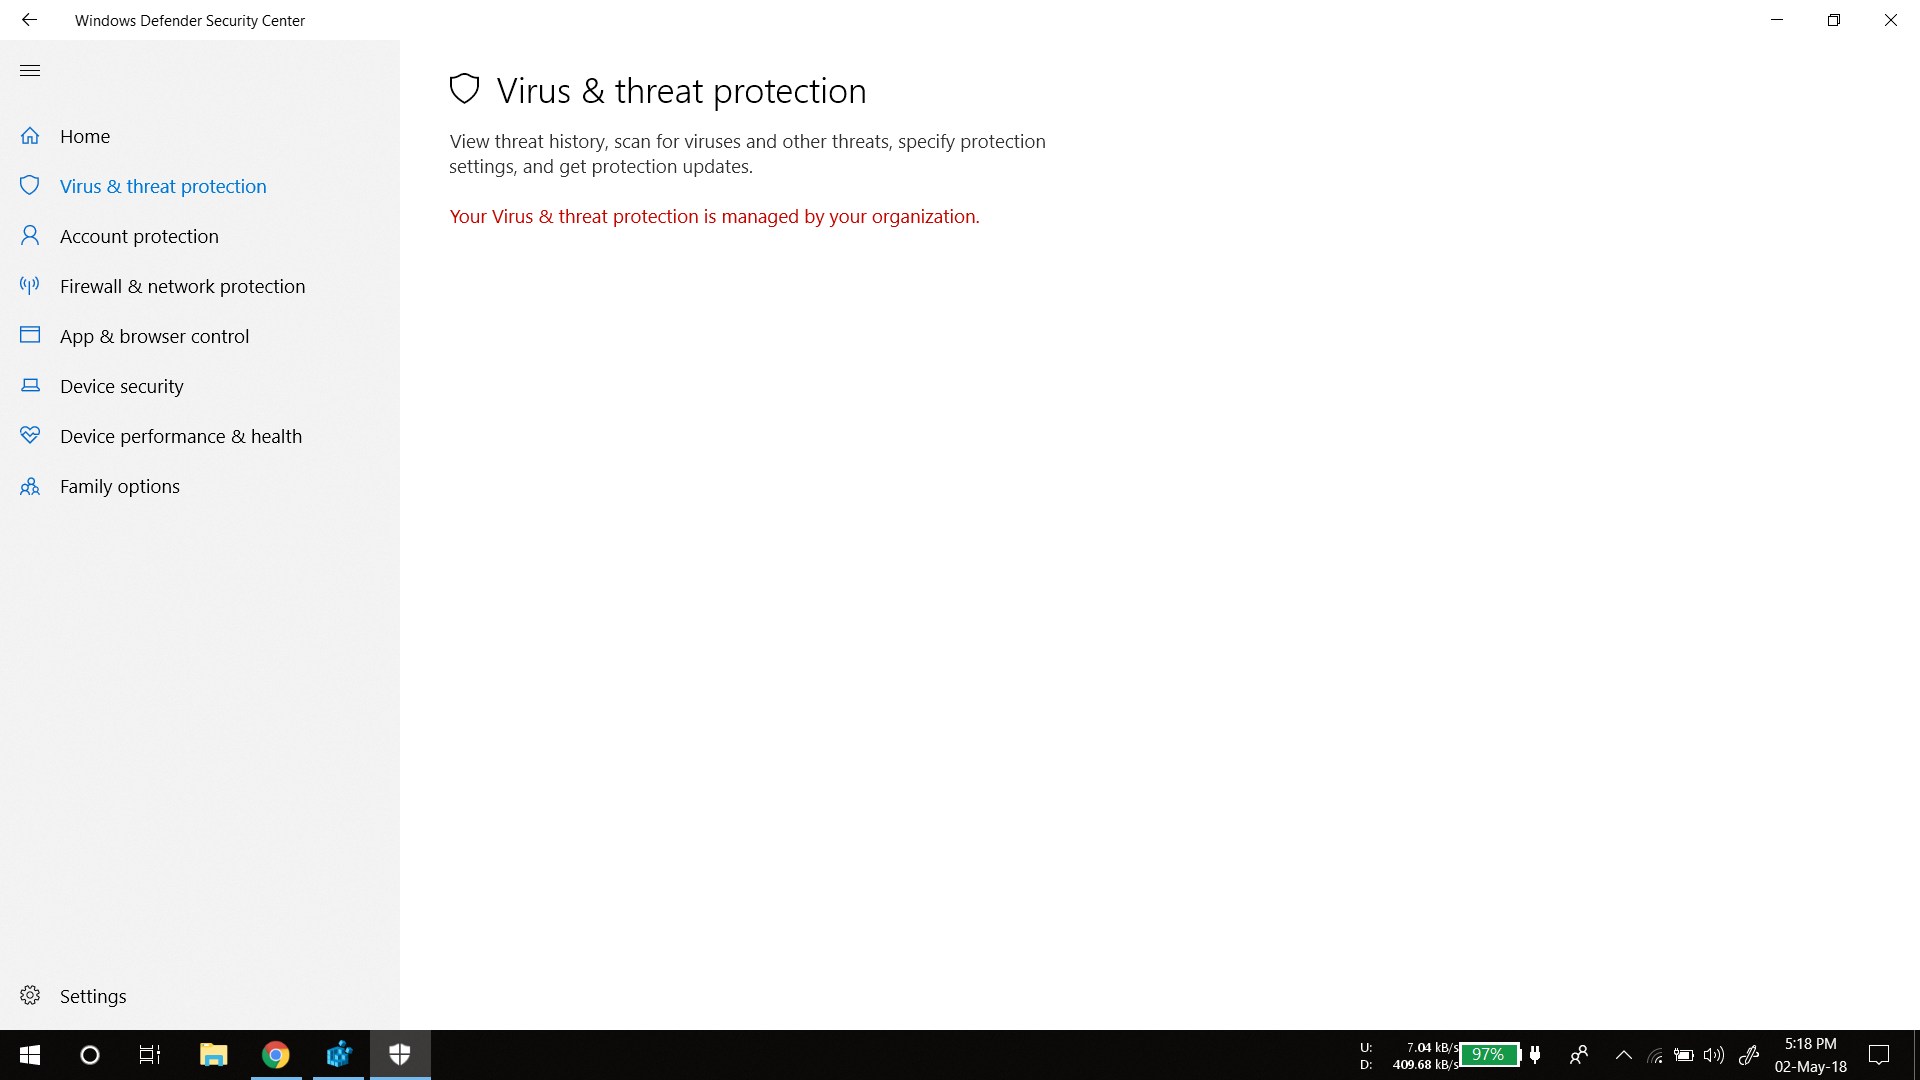 windows defender`s virus & threat proctection is managed by my organization 6408d6ee-1c20-4c97-bf4e-3622cf2cee50?upload=true.png